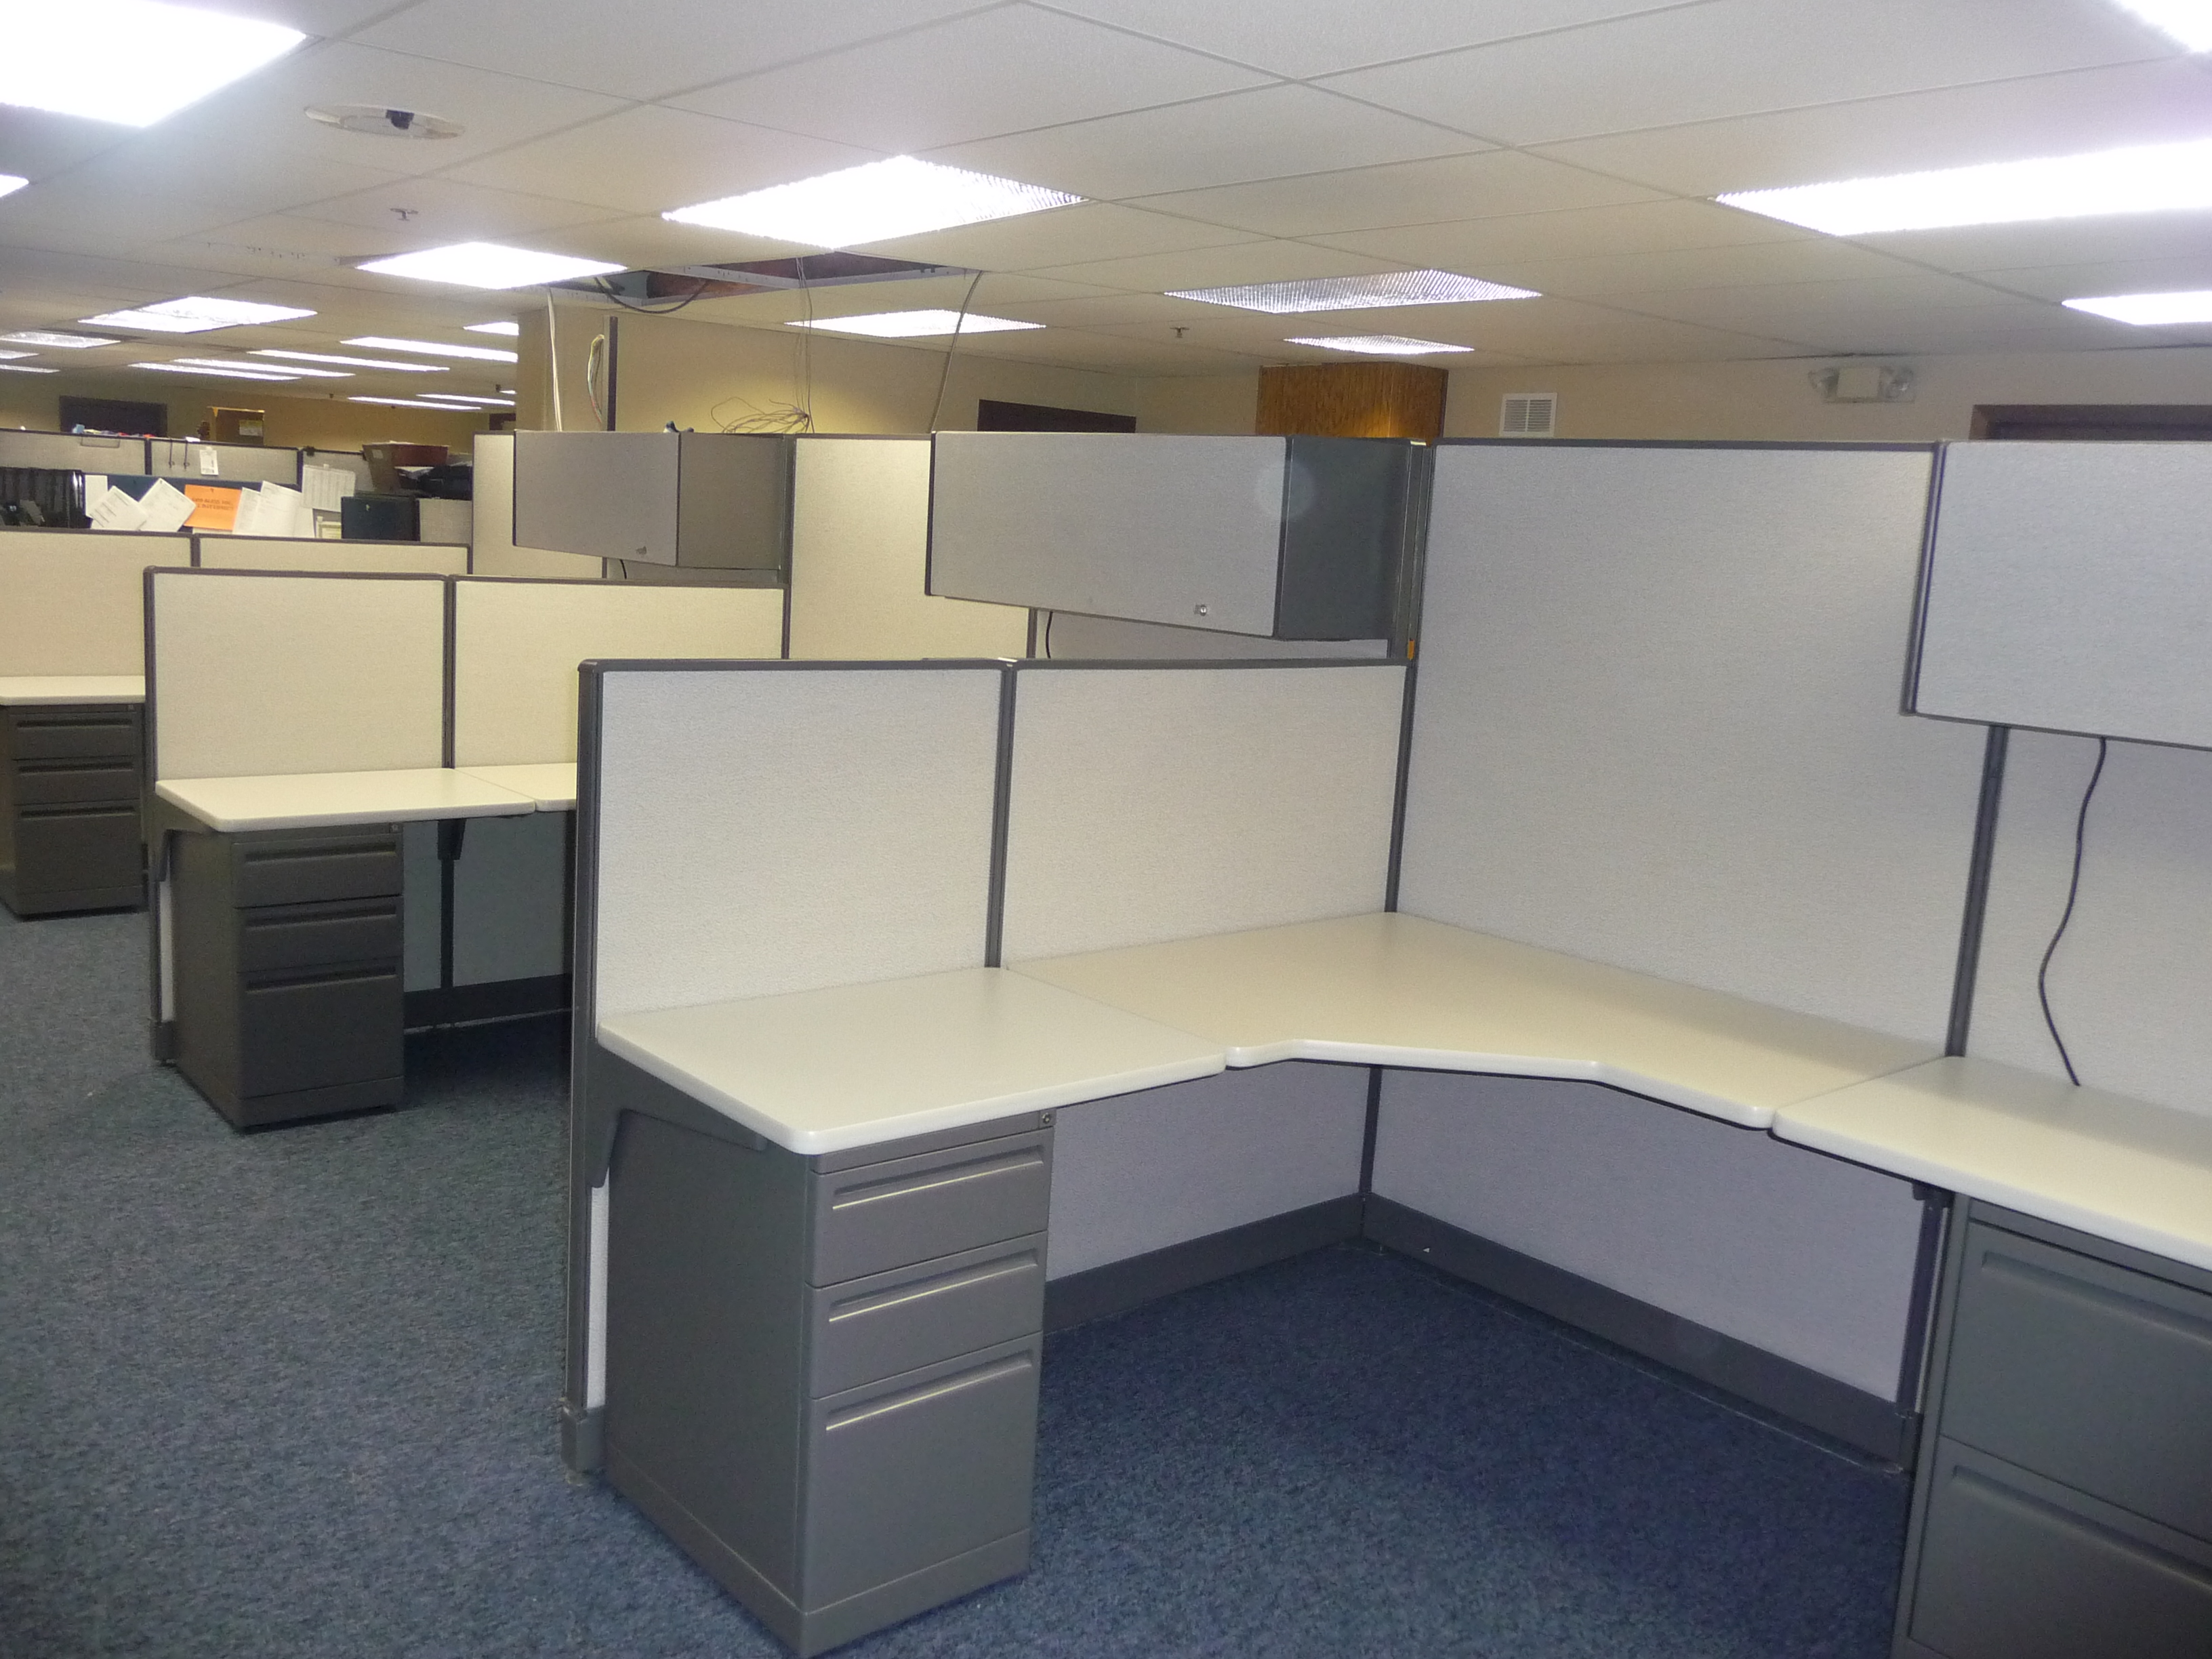 Office Furniture Installation Chicago Dba Cube Install Inc